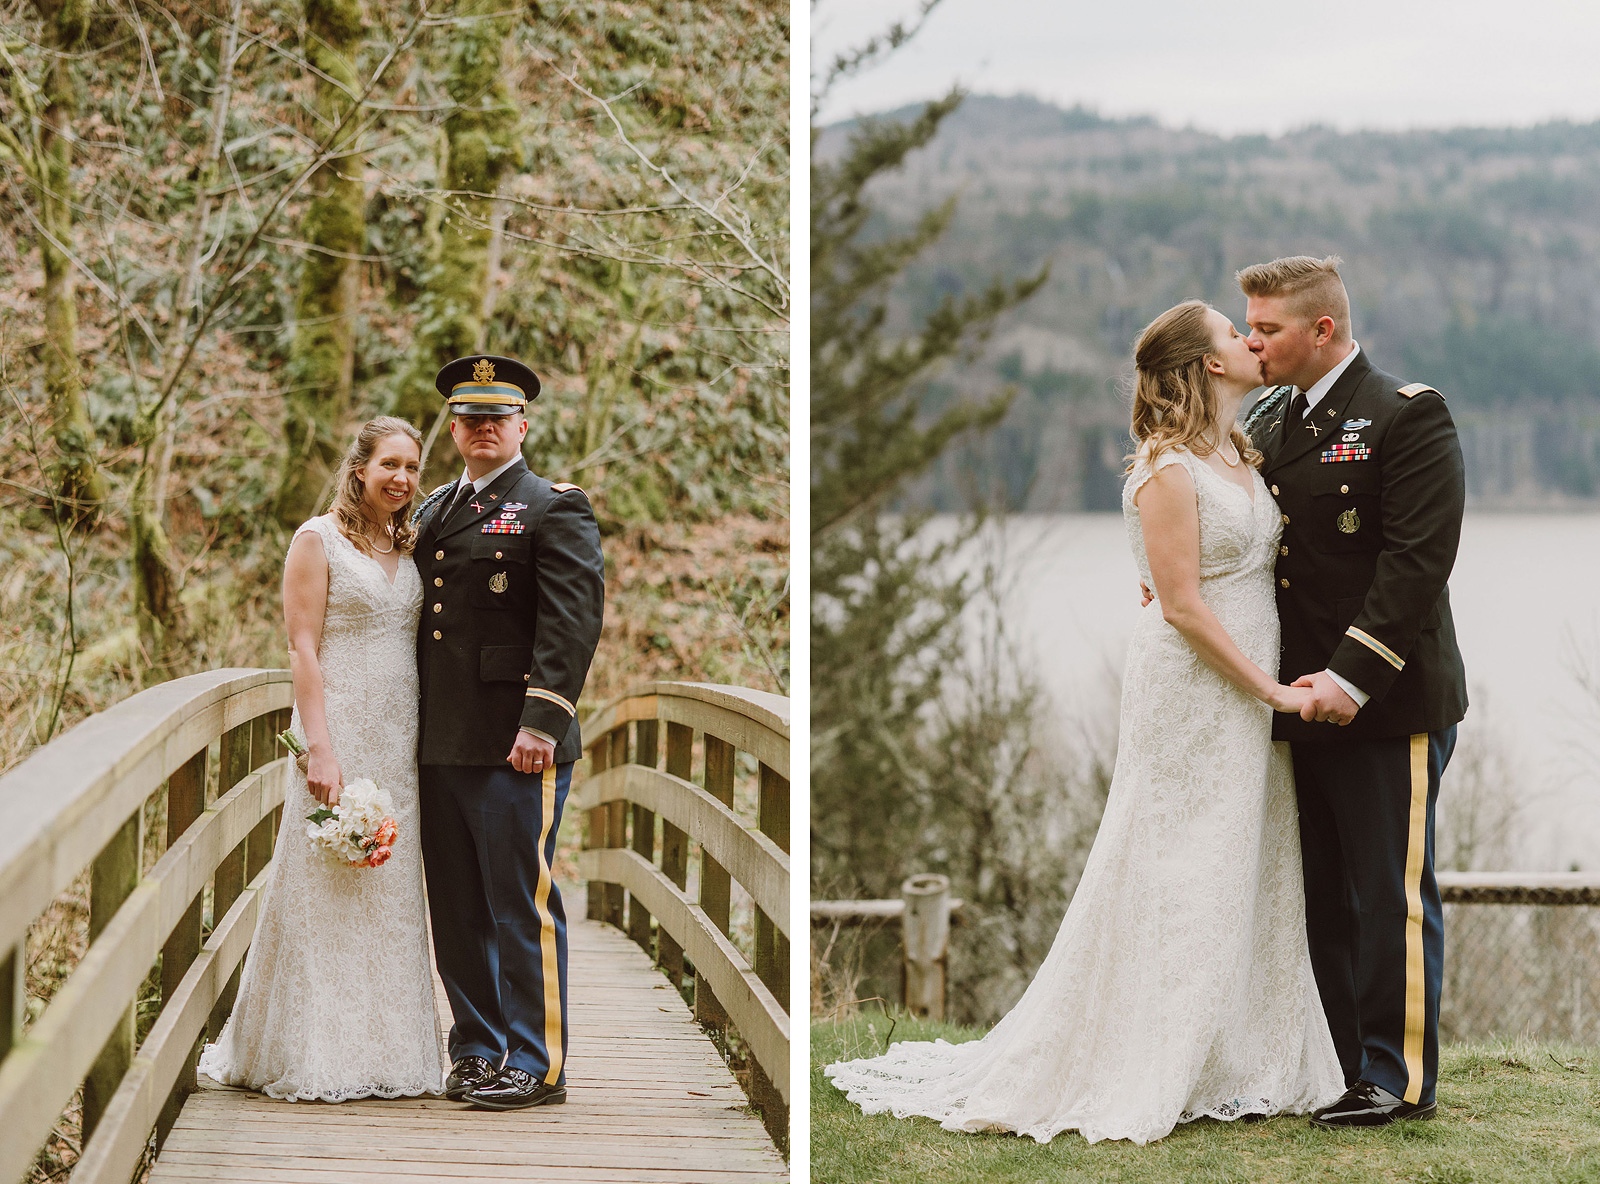 Portraits of Bride and Groom on the hiking trail | Bridal Veil Elopement Photographer